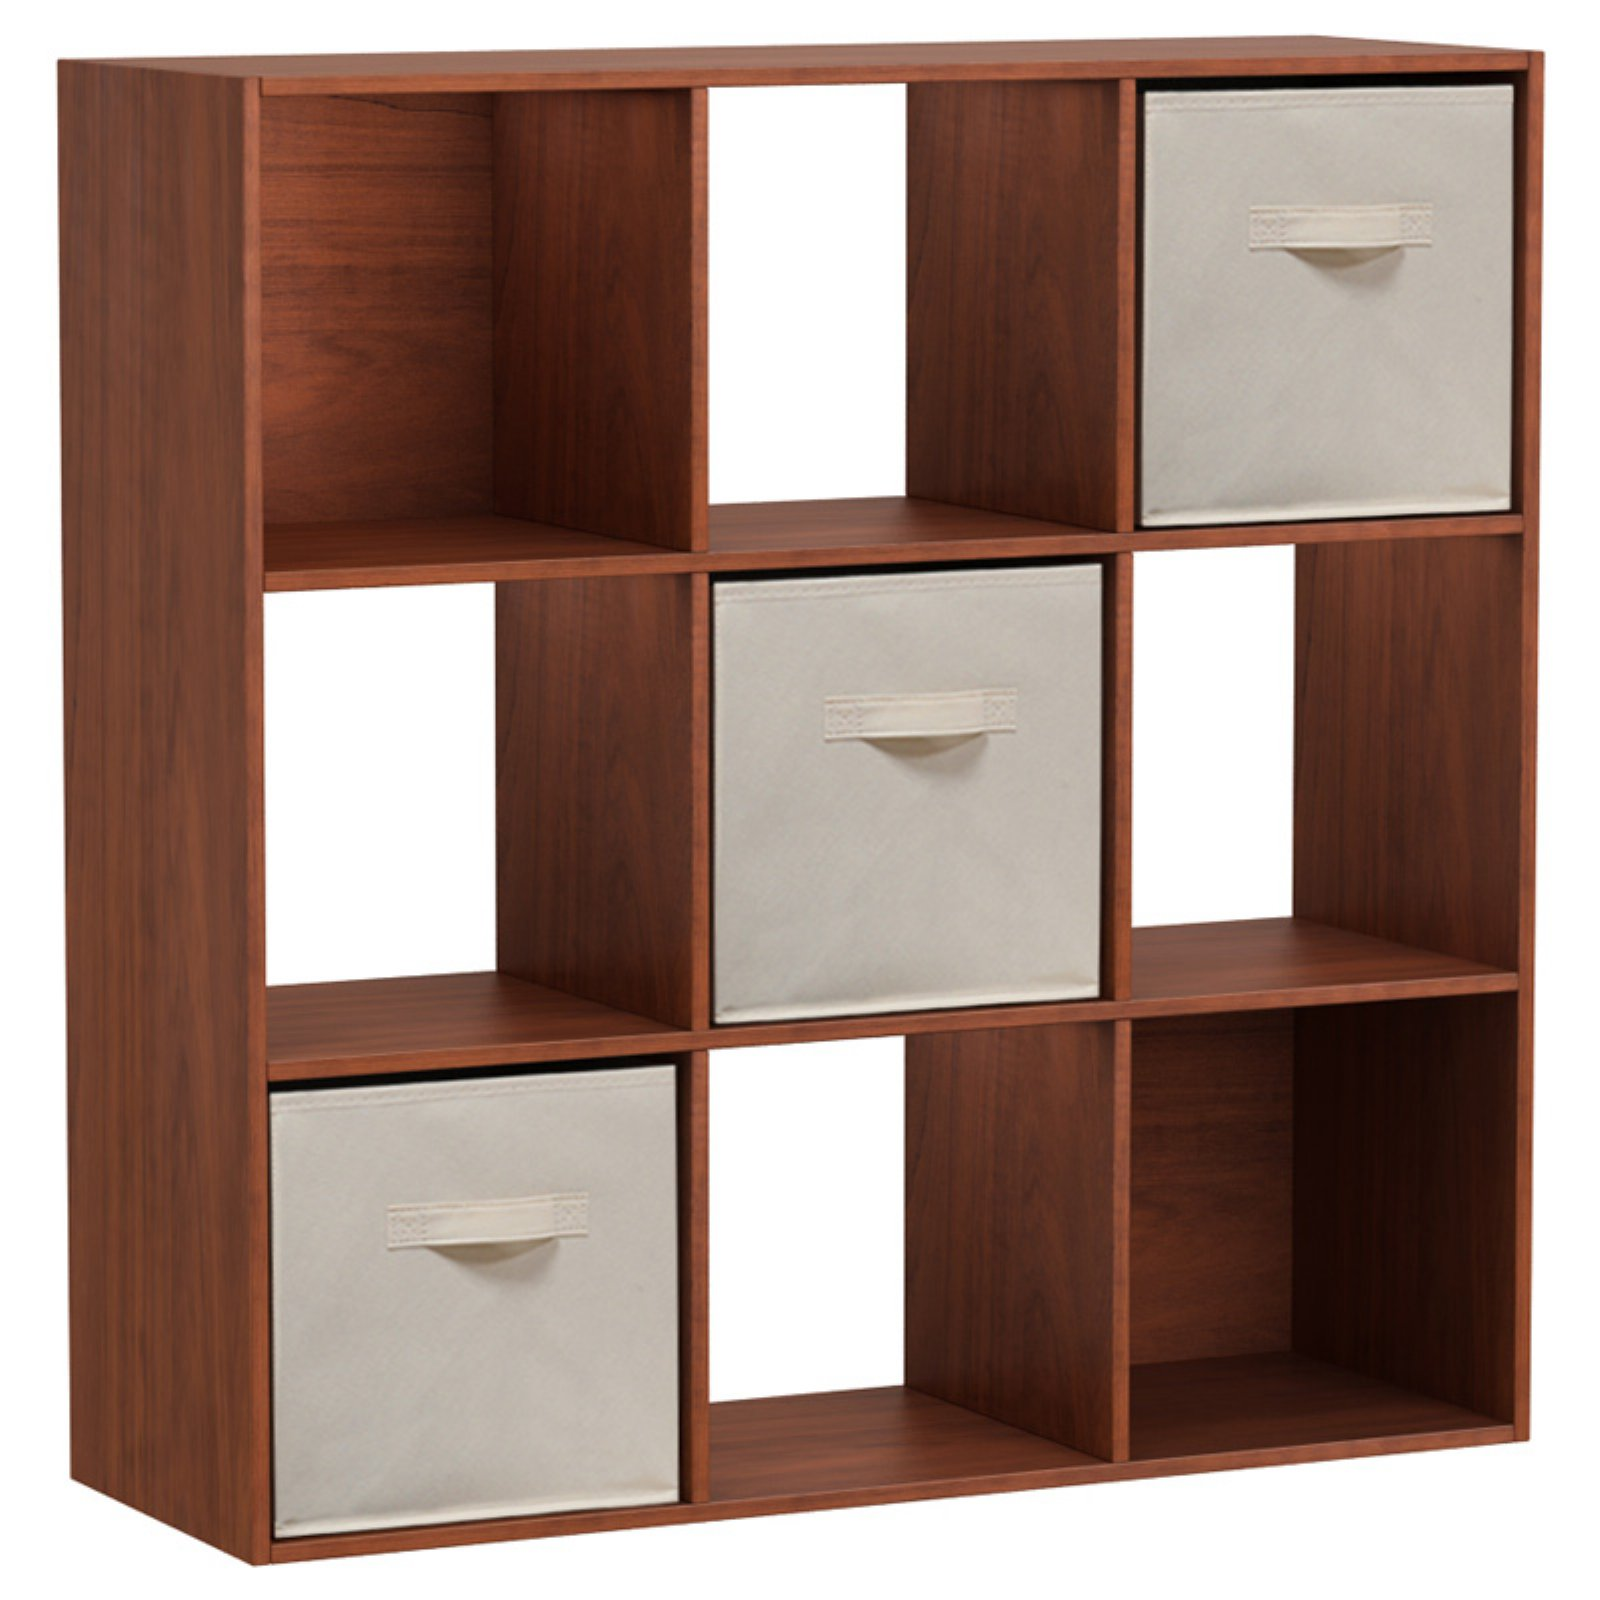 Homestar 9 Cube Bookcase with Fabric Bins